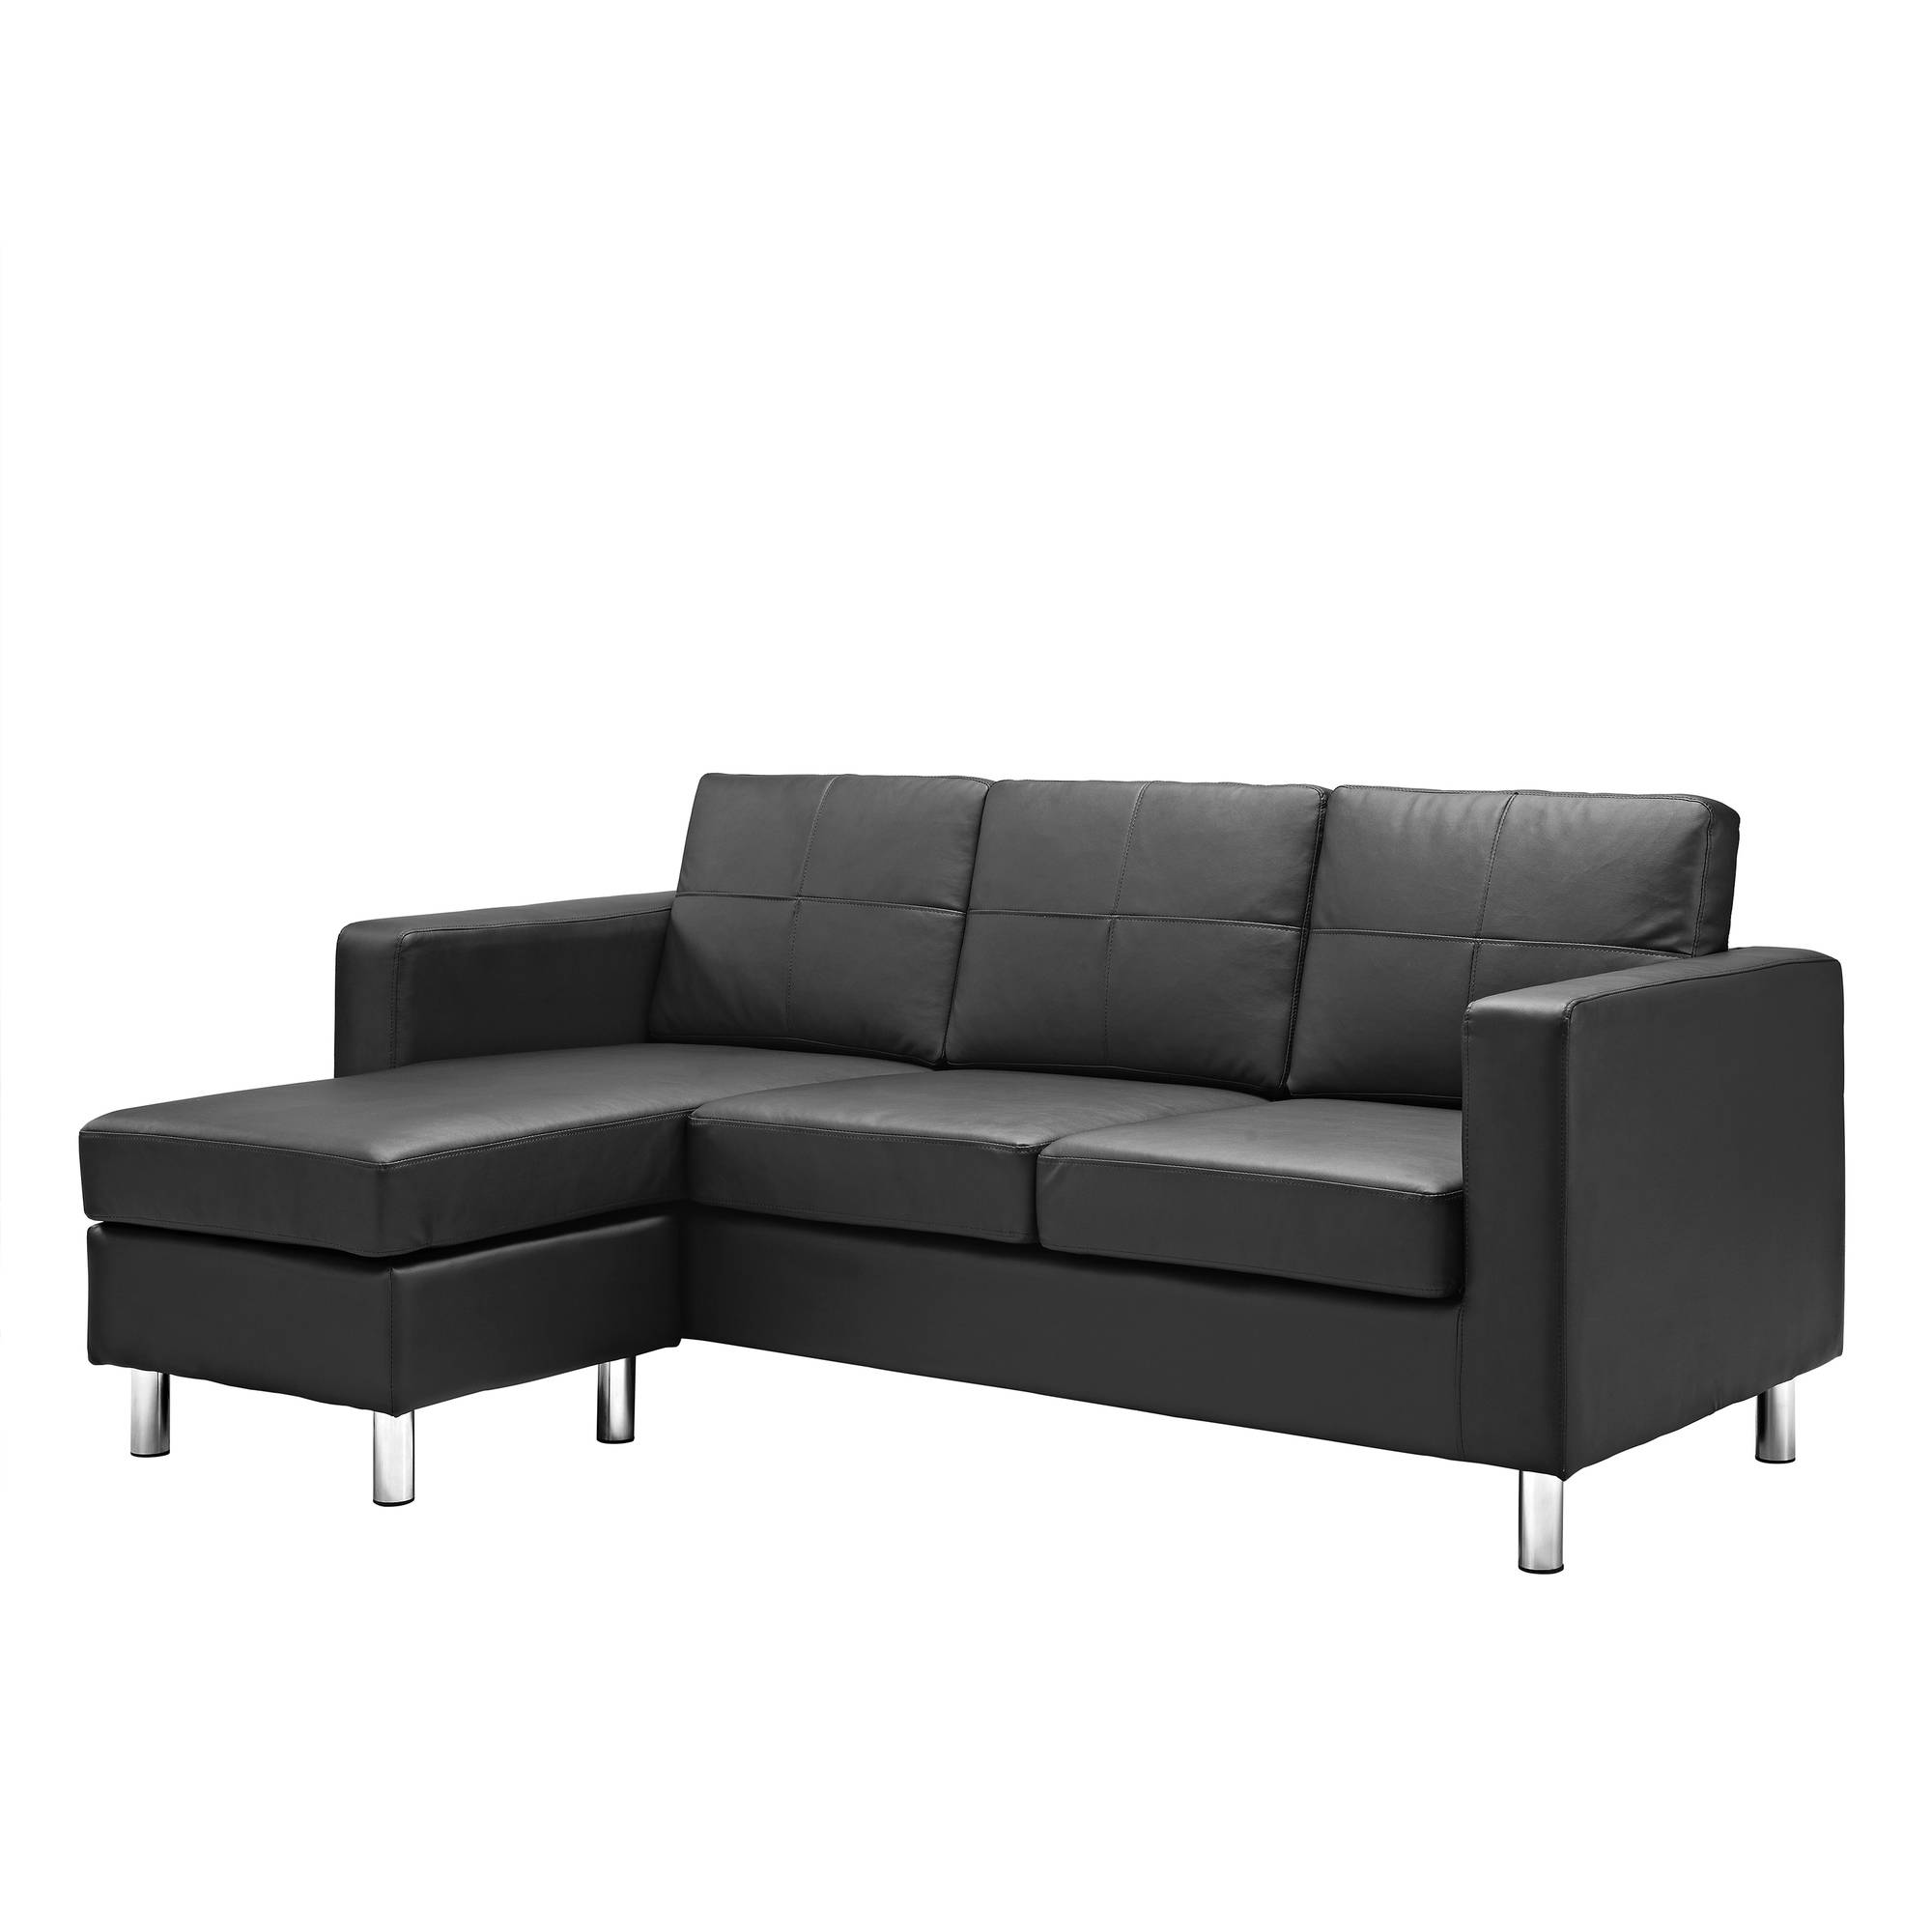 Amazing Dorel Living Small Spaces Configurable Sectional Sofa, Multiple Colors  Image 3 Of 6